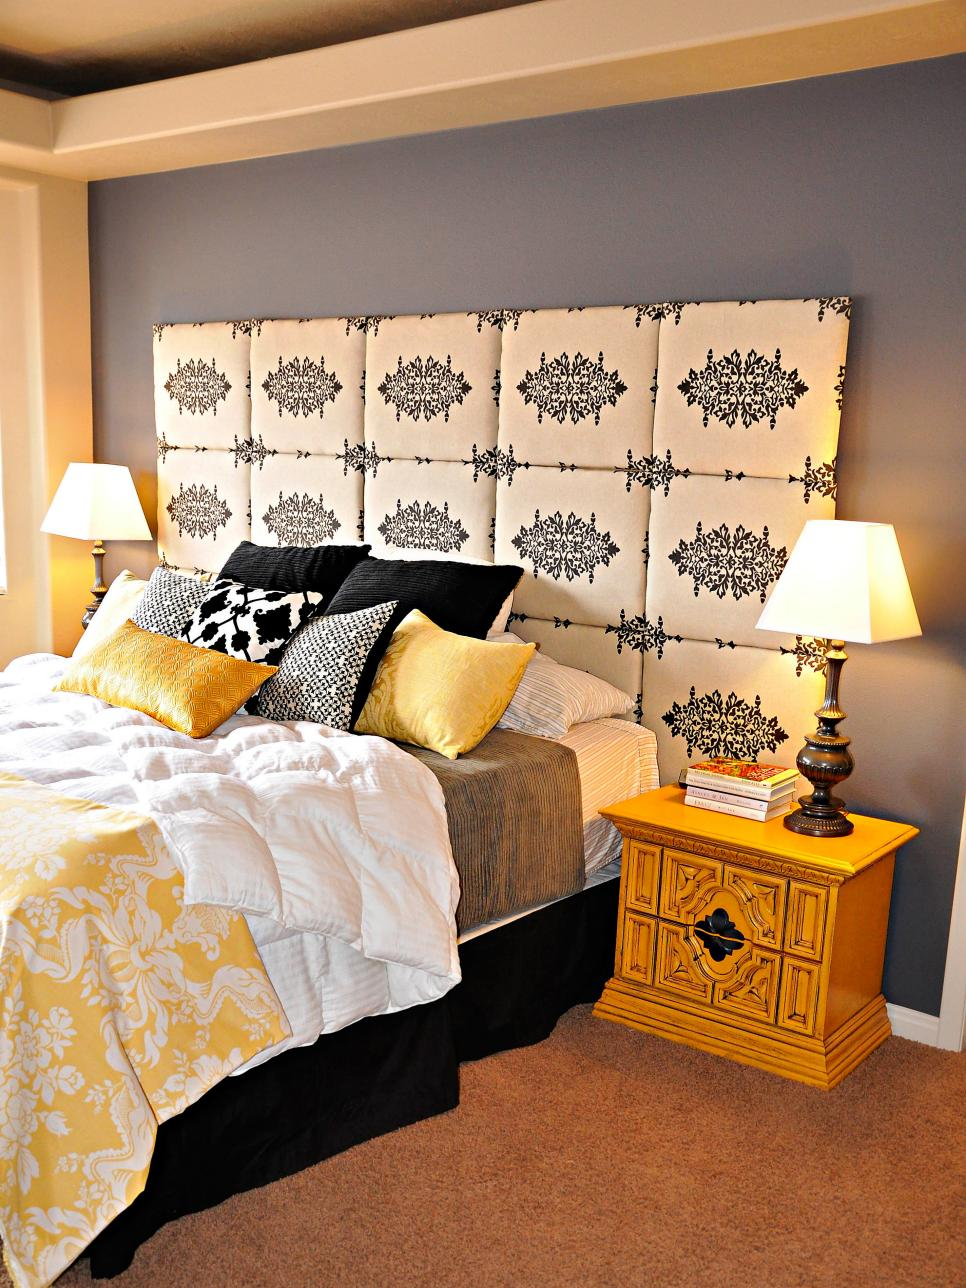 20 high impact headboards hgtv for Bedroom headboard ideas